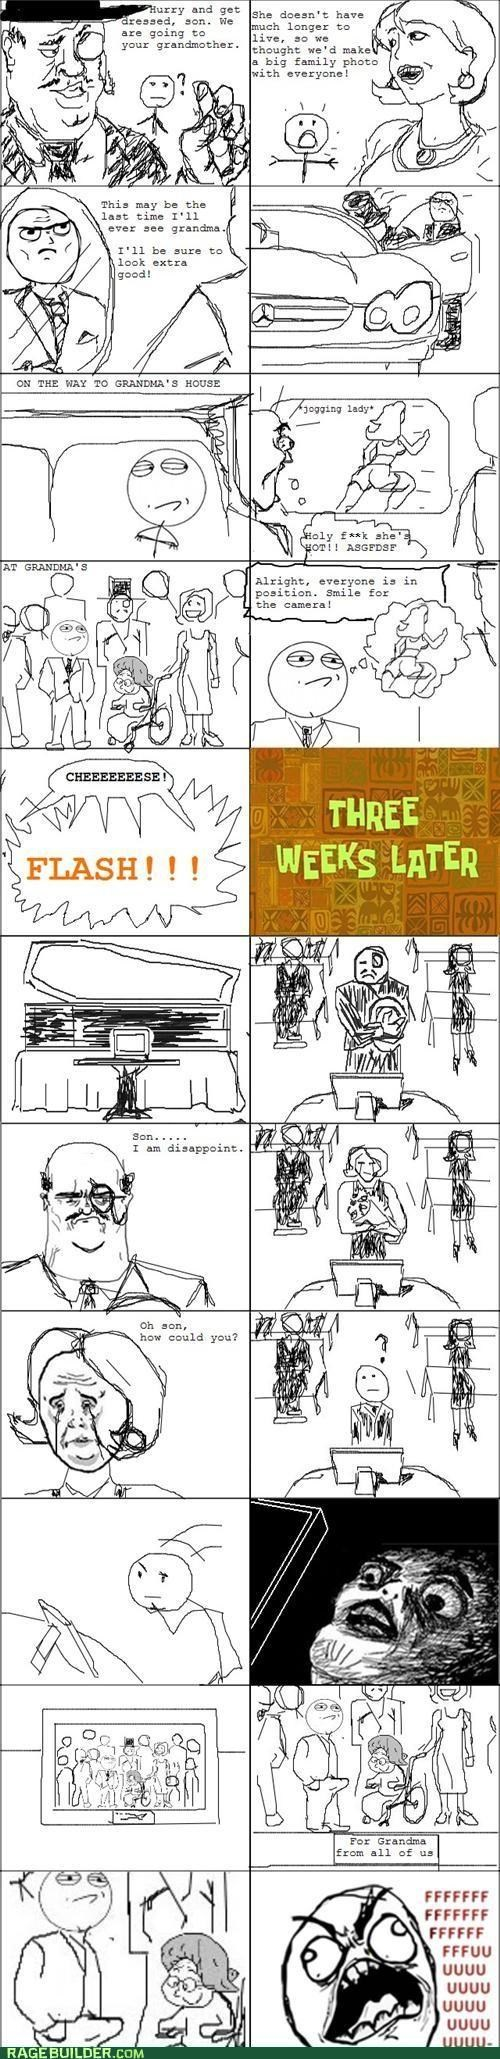 Awkward best of week family photo hand drawn Rage Comics - 5410047232